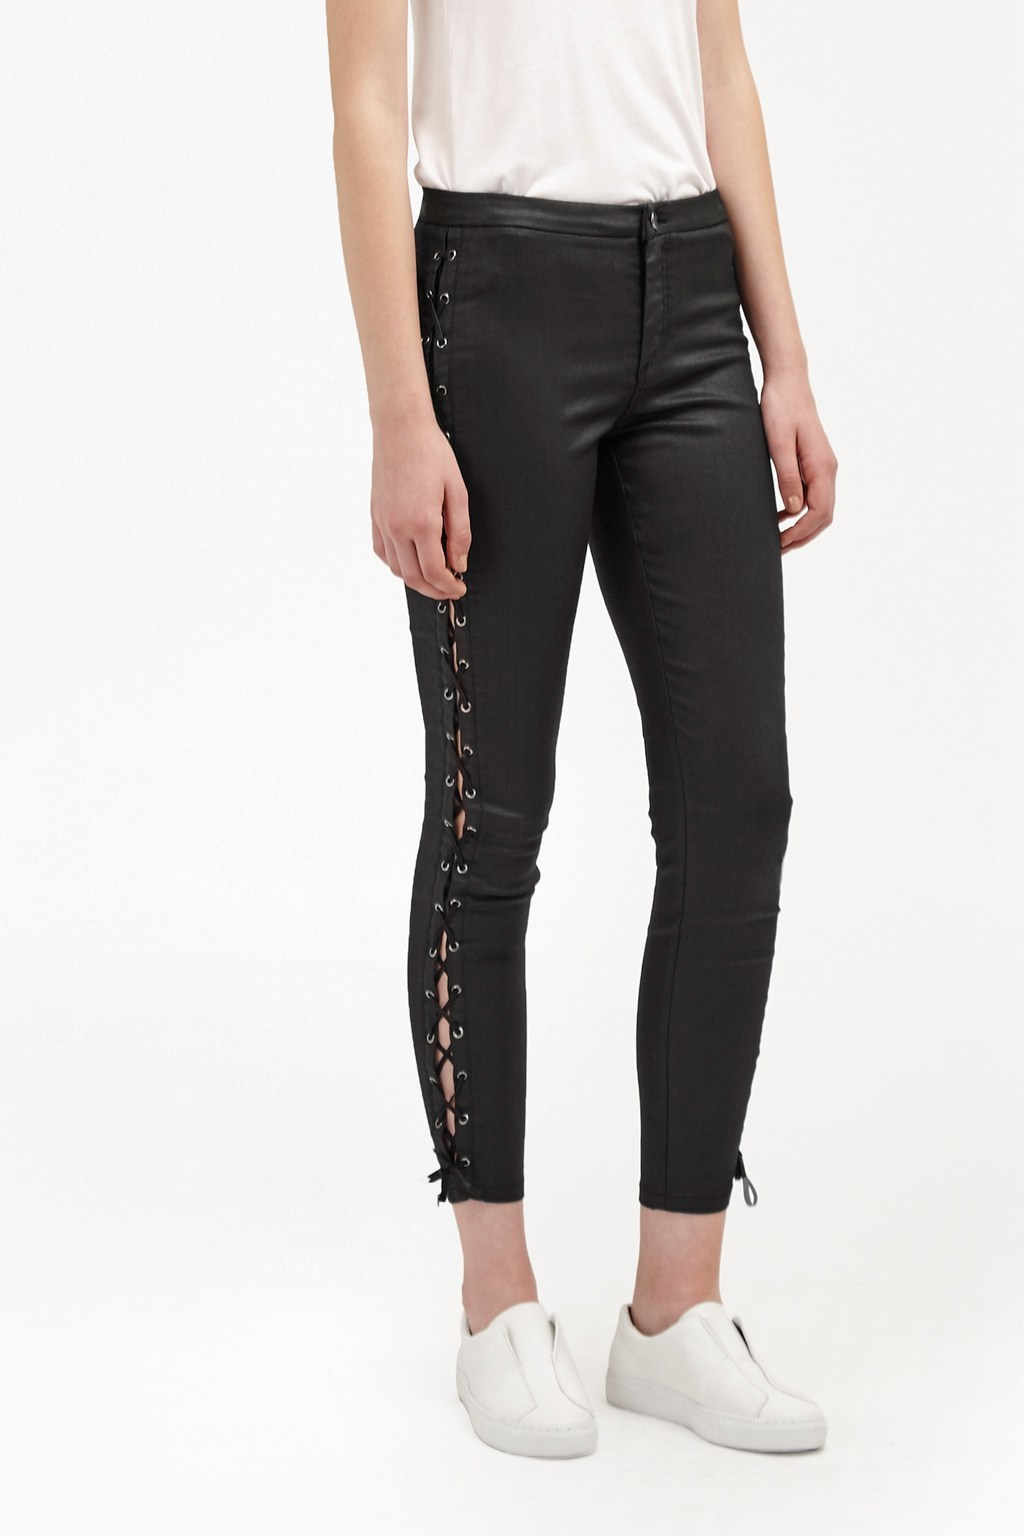 Resin Biker Lace Up Skinny Jeans Black - style: skinny leg; pattern: plain; waist: high rise; predominant colour: black; occasions: casual, evening, creative work; length: ankle length; fibres: cotton - stretch; texture group: leather; pattern type: fabric; season: a/w 2016